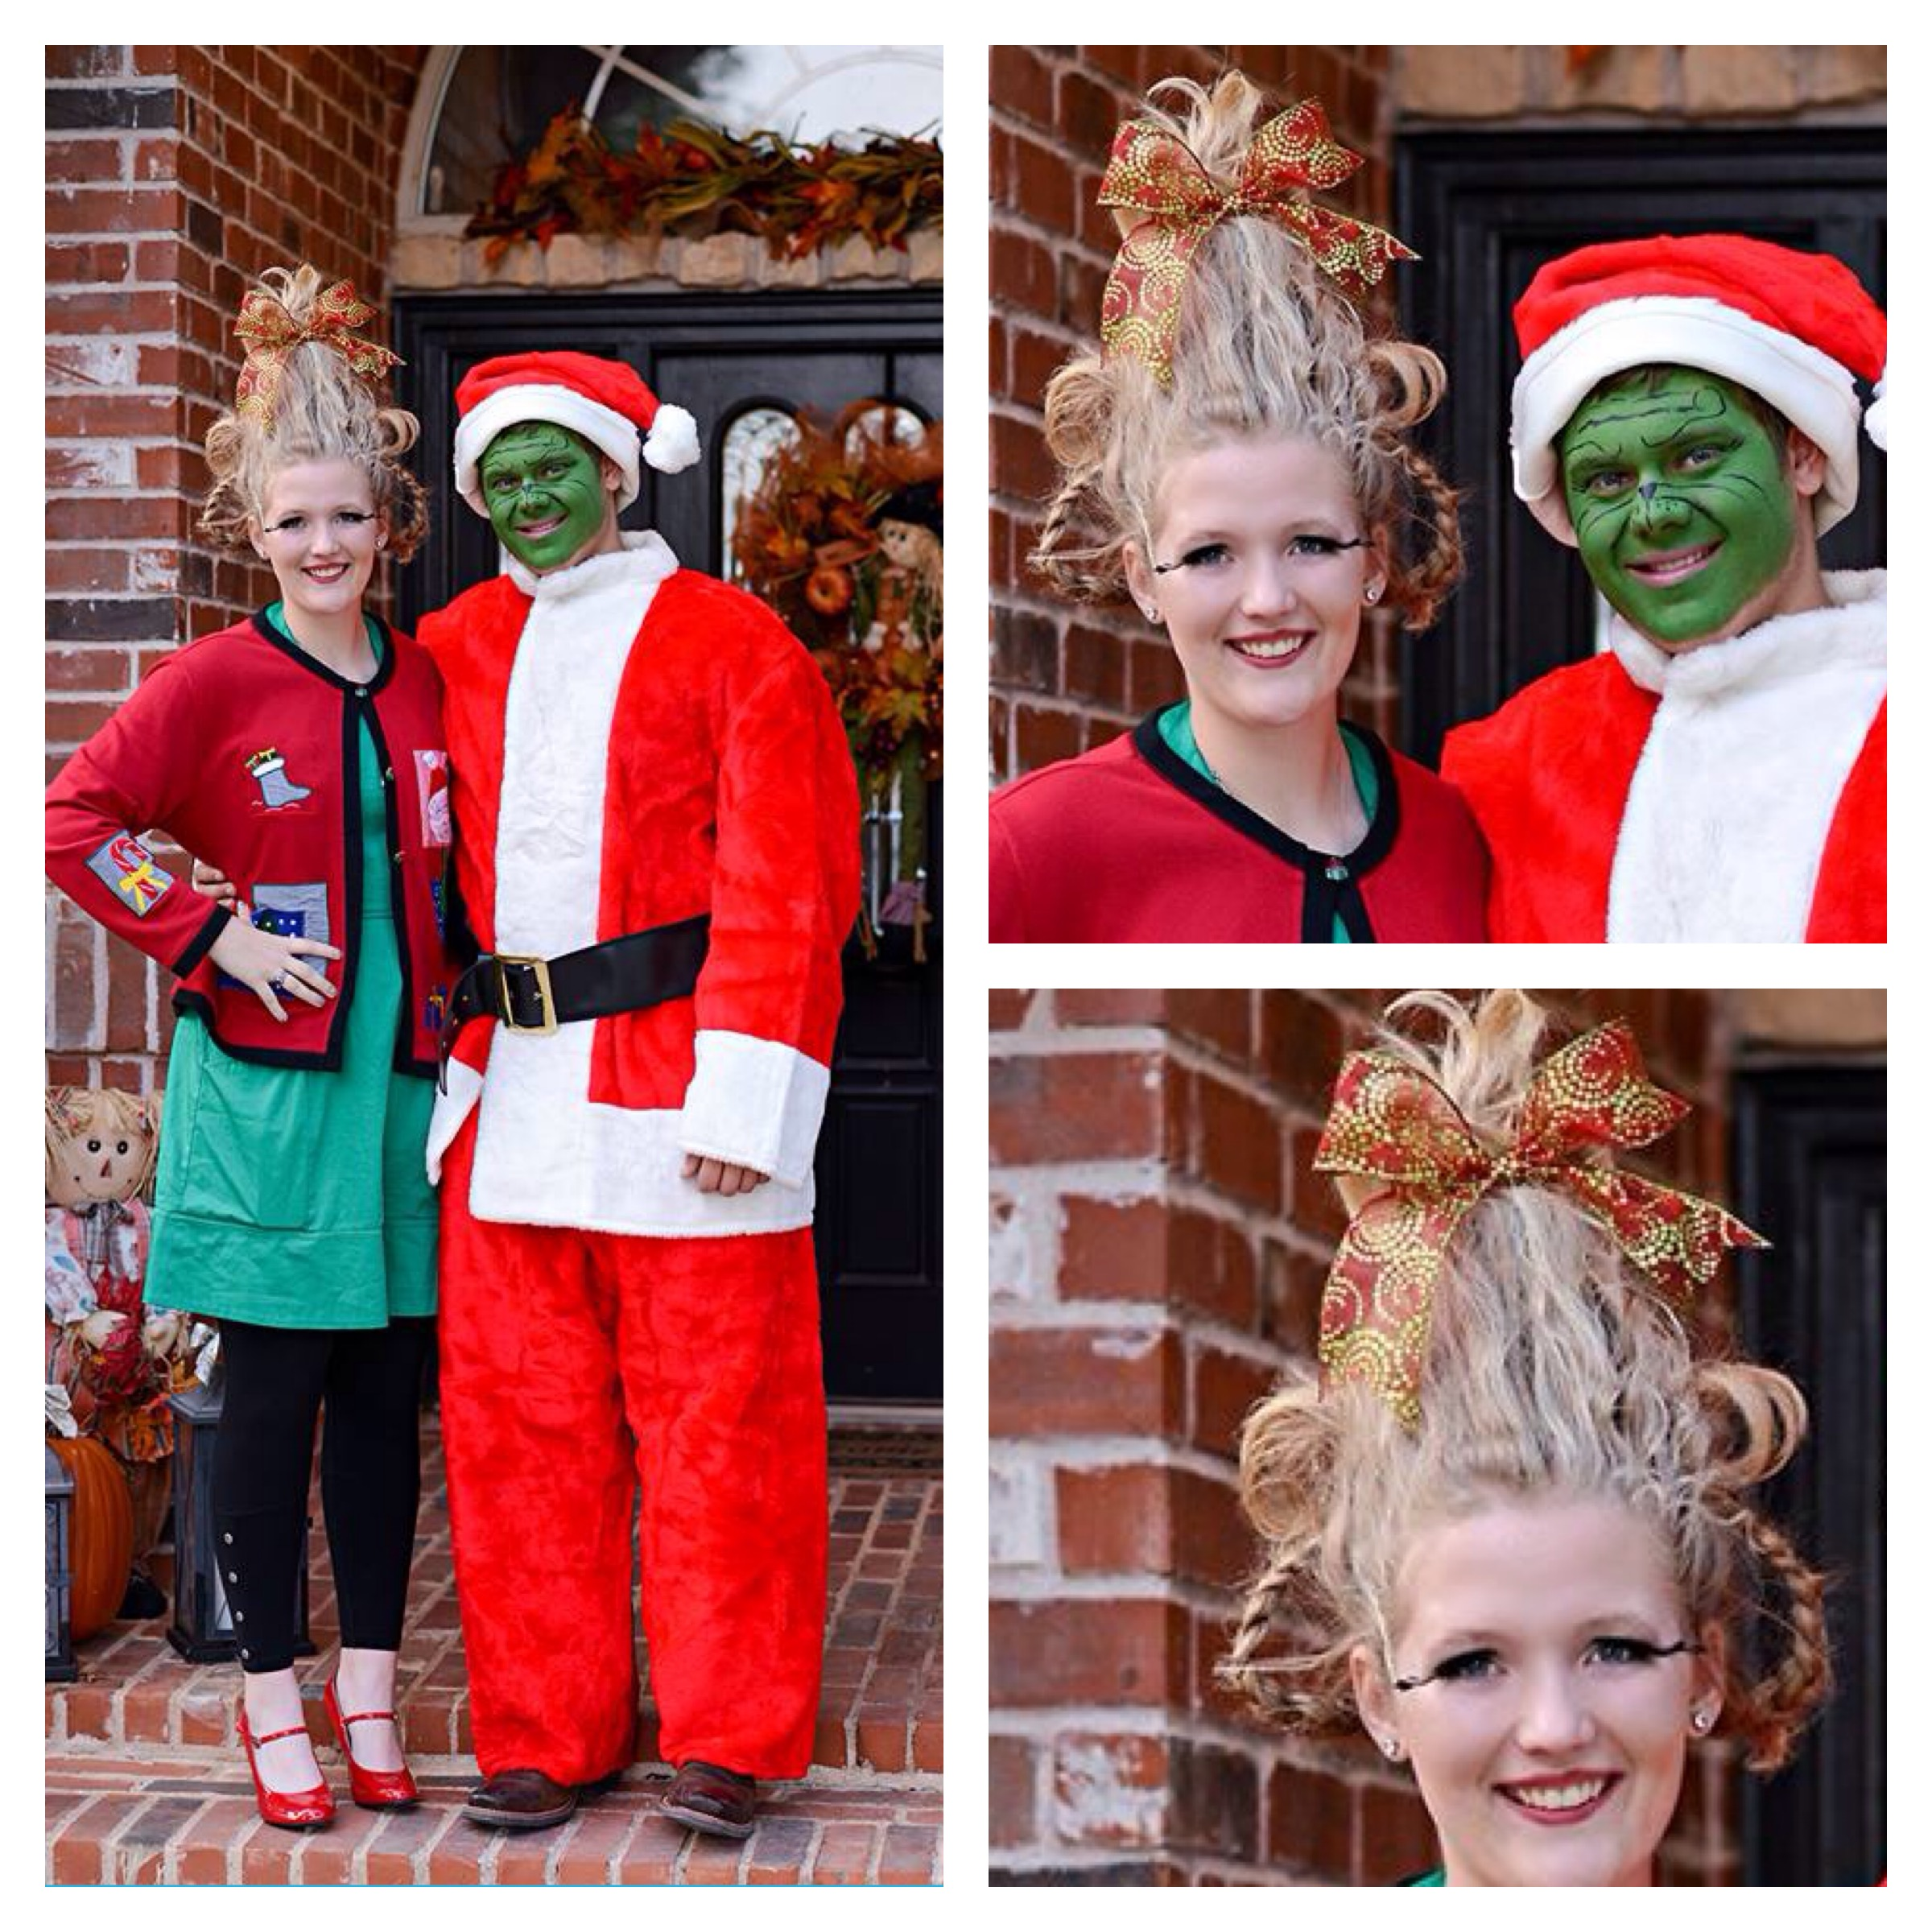 cindy lou who and her grinch